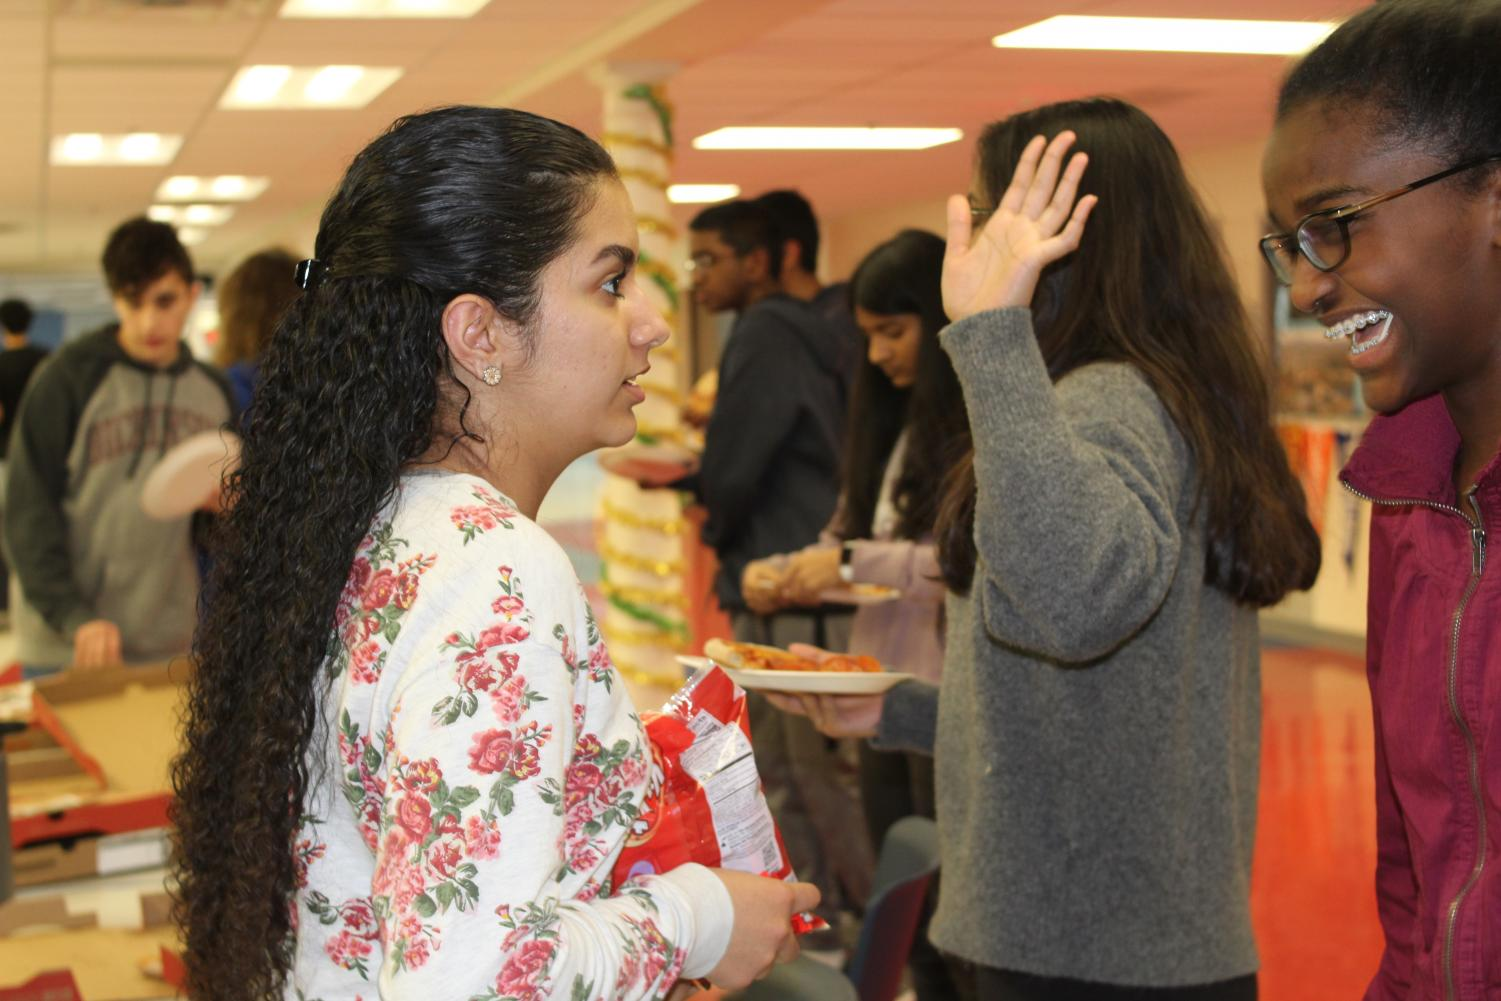 After+the+passing+out+of+pizza%2C+two+of+the+organizers+of+the+Kindness+Extravaganza%2C+sophomores+Gurleen+Kaur+and+Eban+Ebssa+discuss+the+event.+%22I+thought+the+kindness+extravaganza+would+be+a+good+opportunity+for+people+to+perform+and+receive+kind+acts%2C+which+both+make+you+feel+good%2C+and+also+to+make+new+friends%2C%22+Ebssa+said.